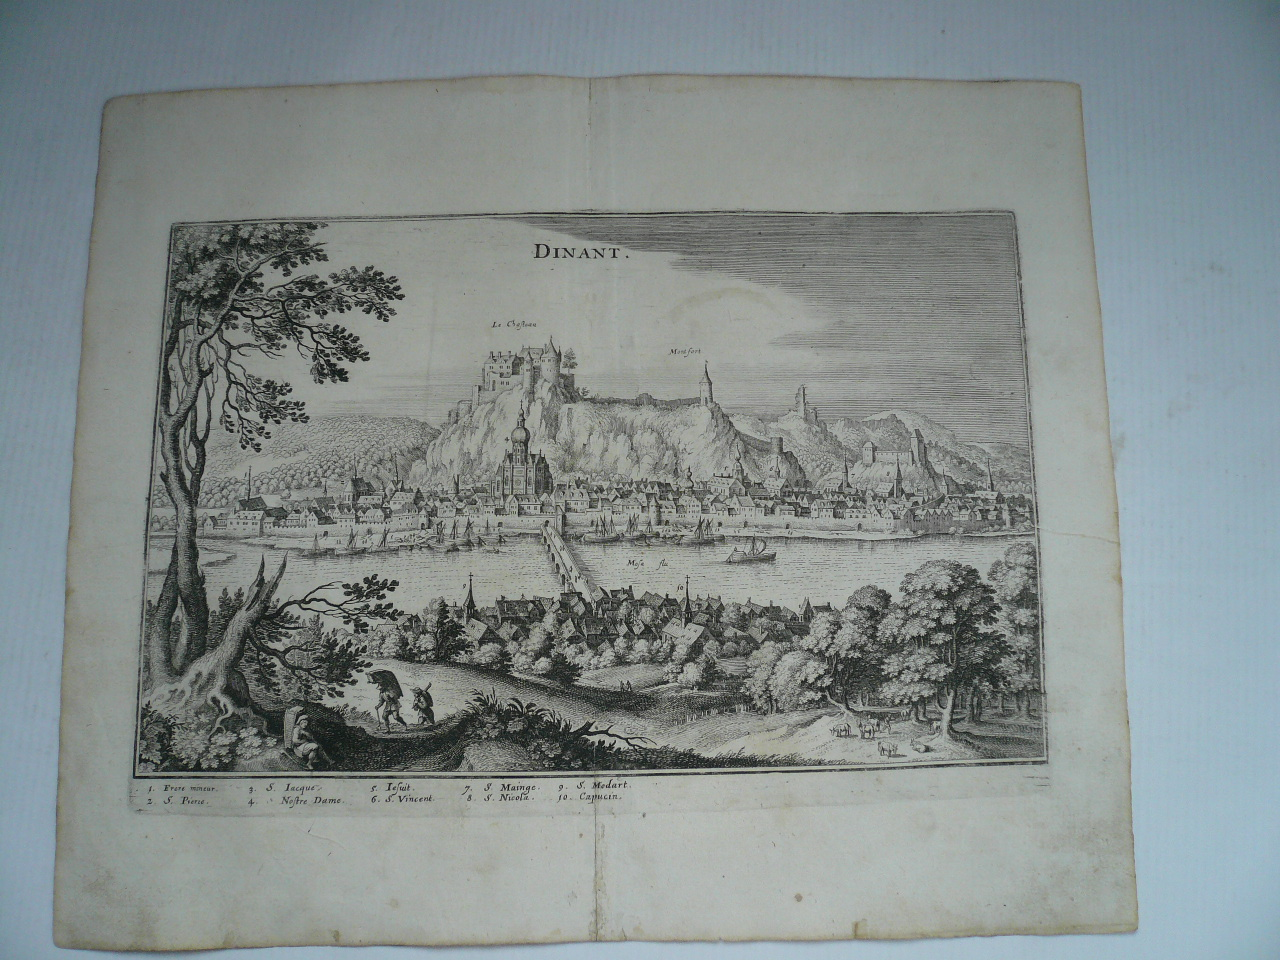 Dinant, anno 1647, copperengraving, Merian Matthäus, edited in h